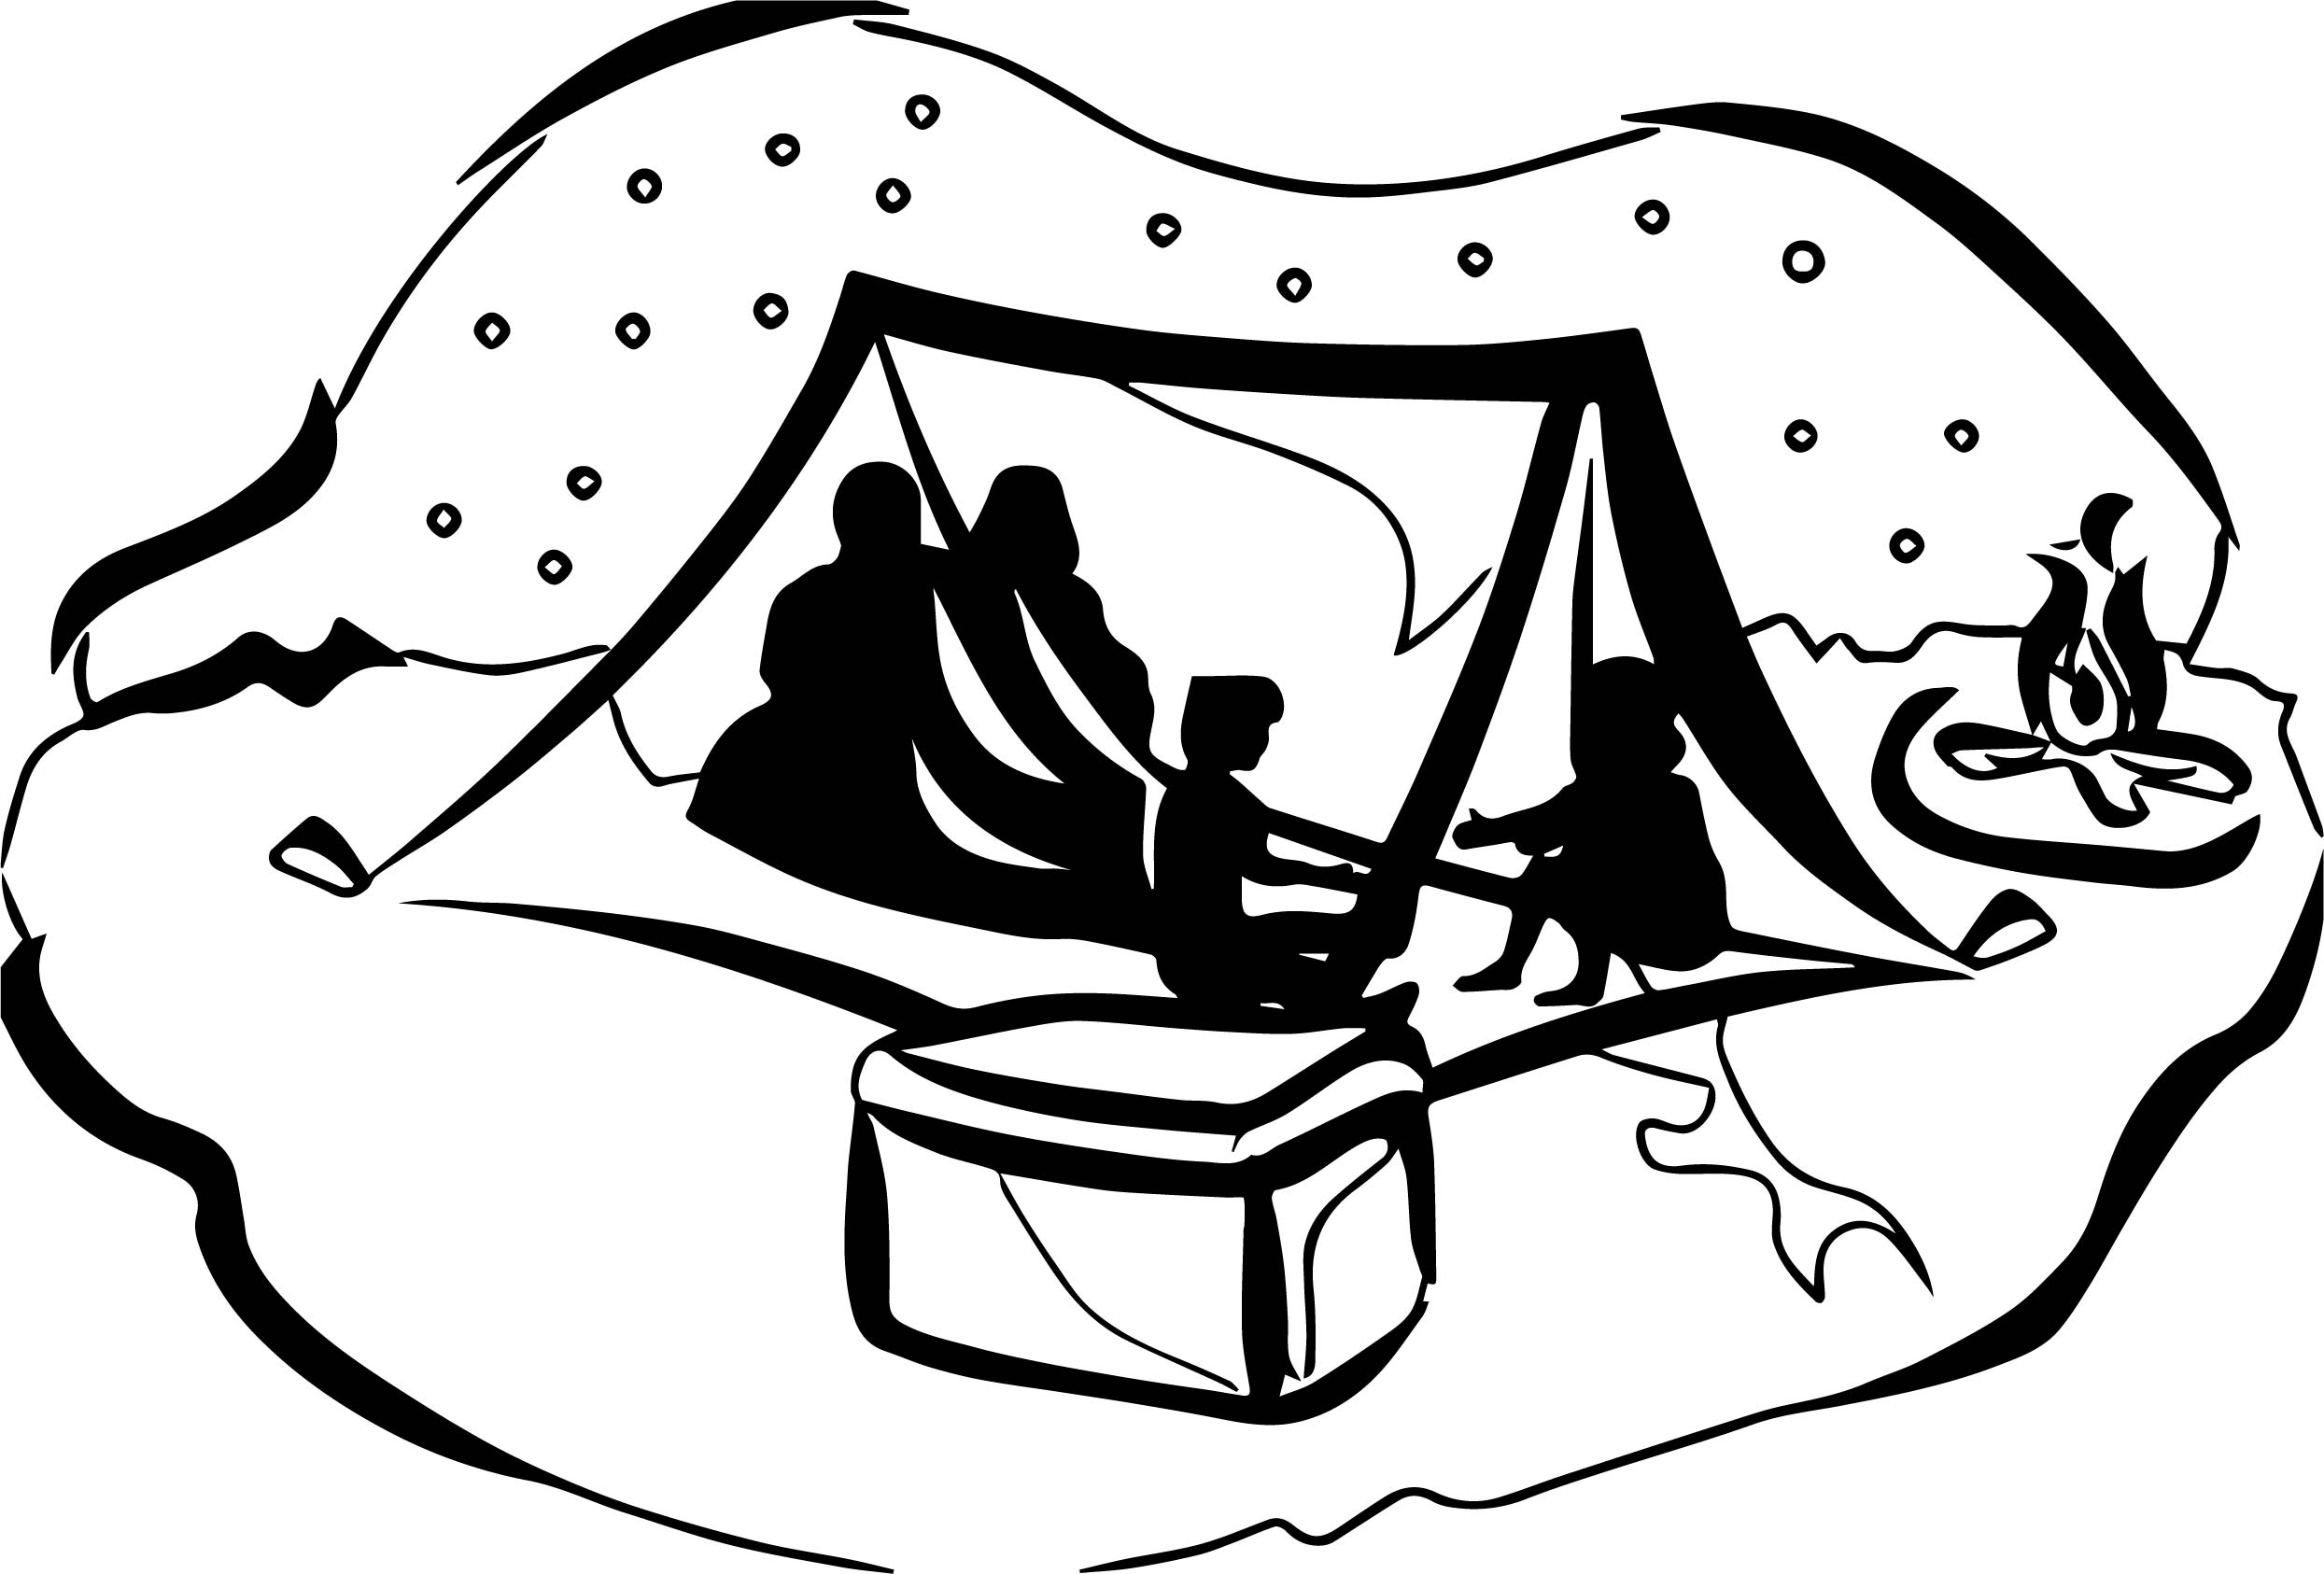 2489x1686 Art King Camping Night Coloring Page Wecoloringpage